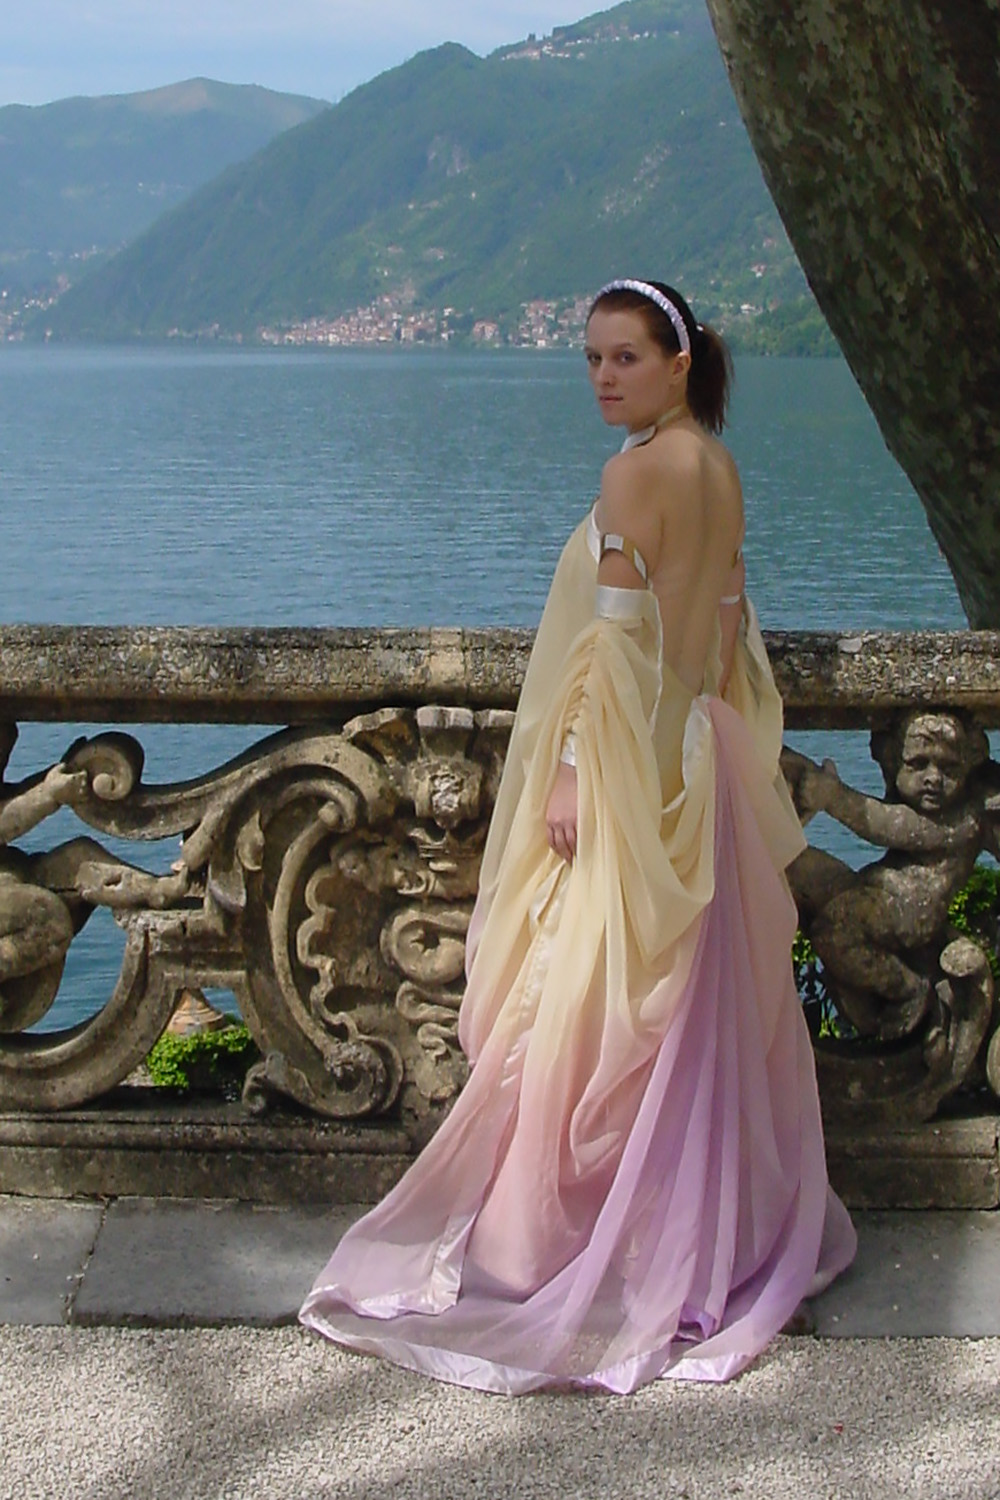 Padme Amidala, Naboo Lake Retreat